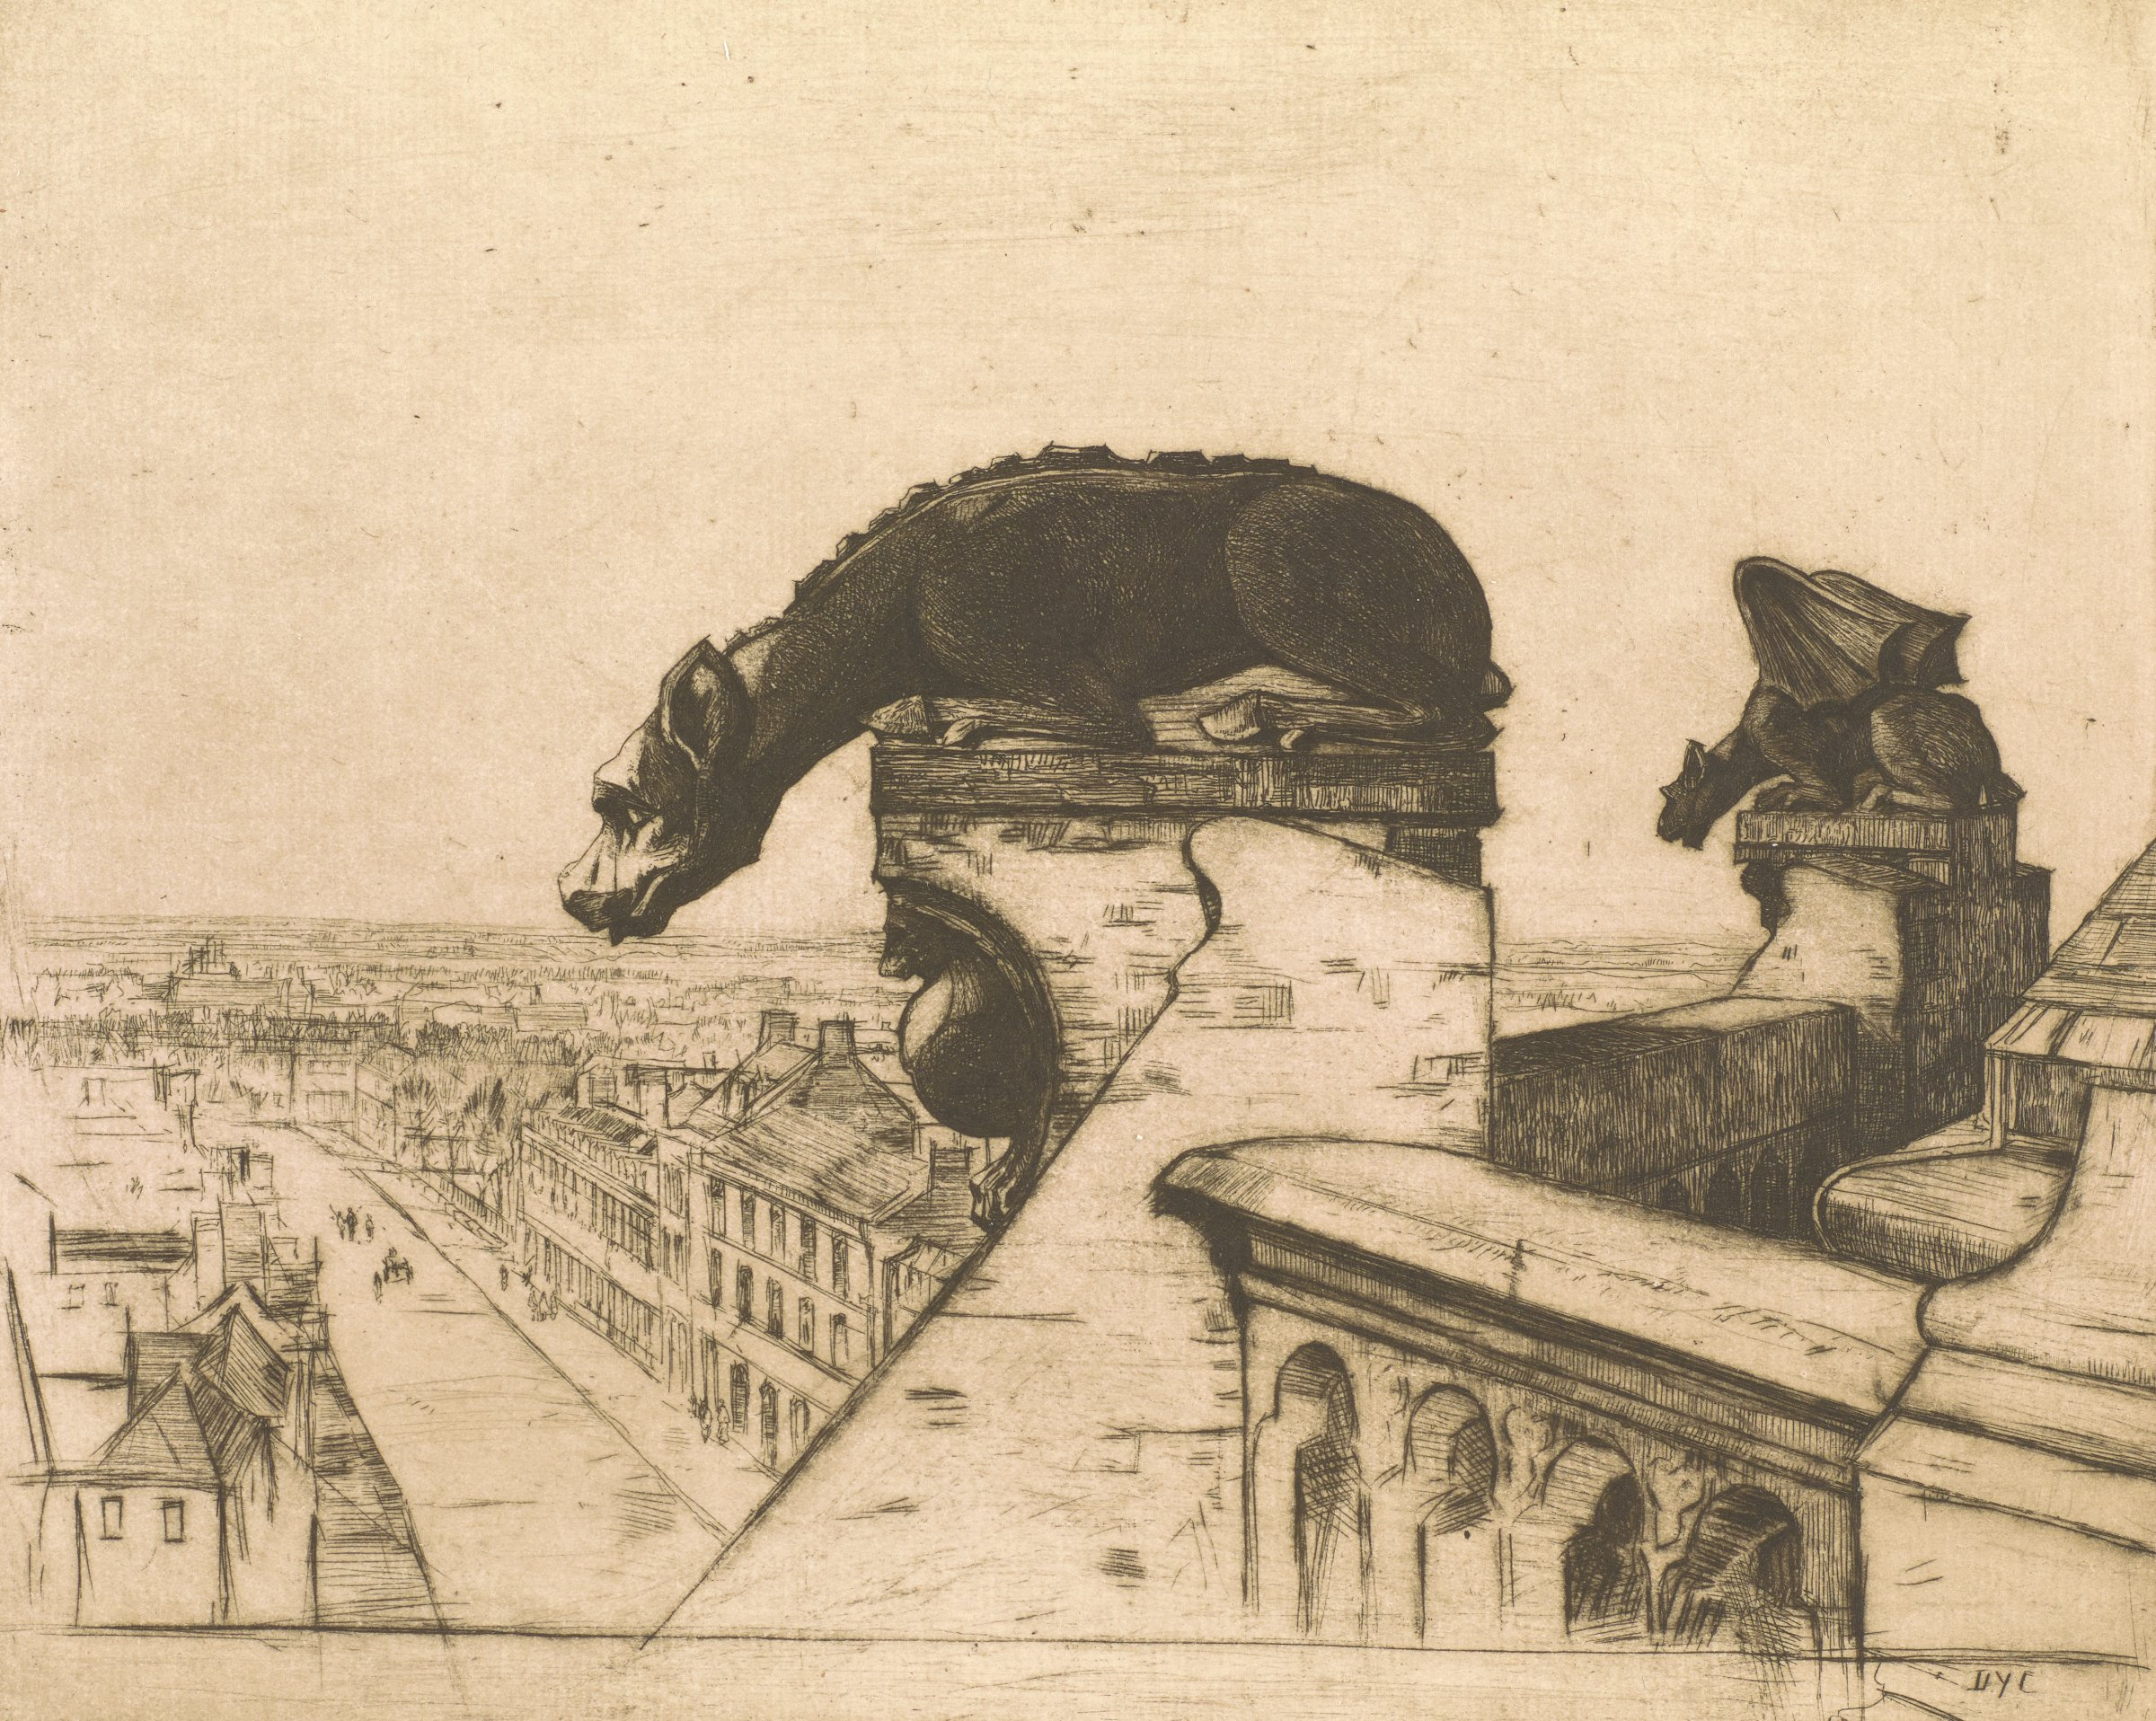 A sculpture sits atop a cathedral of a wingless chimera looking down at the city below. Another chimera decorates the cathedral in the background.